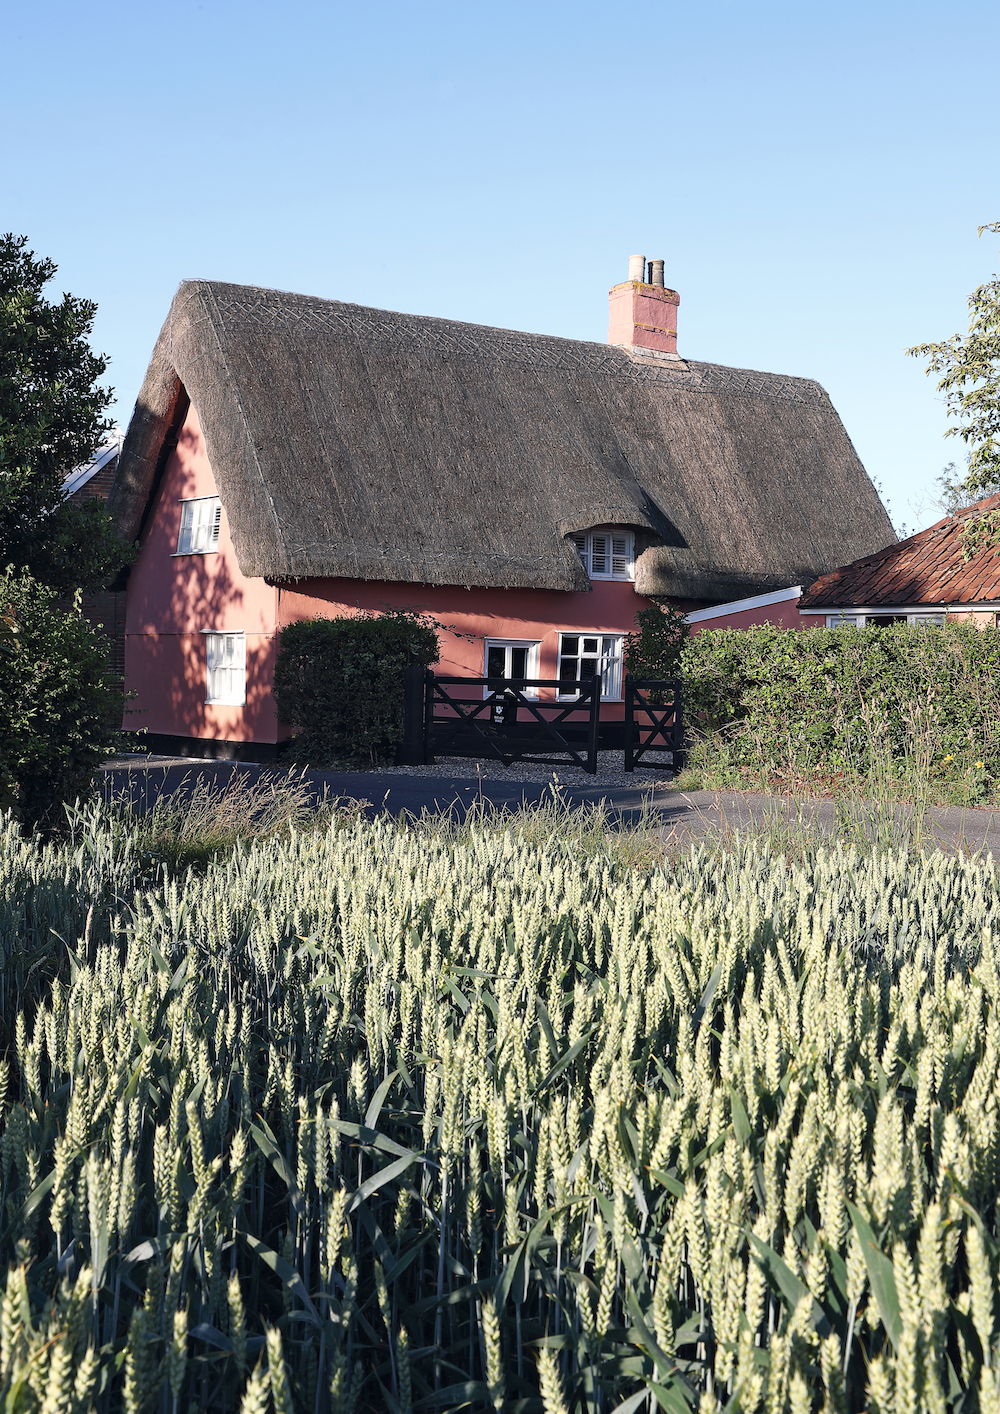 History Is Celebrated In This Modernized English Country Cottage